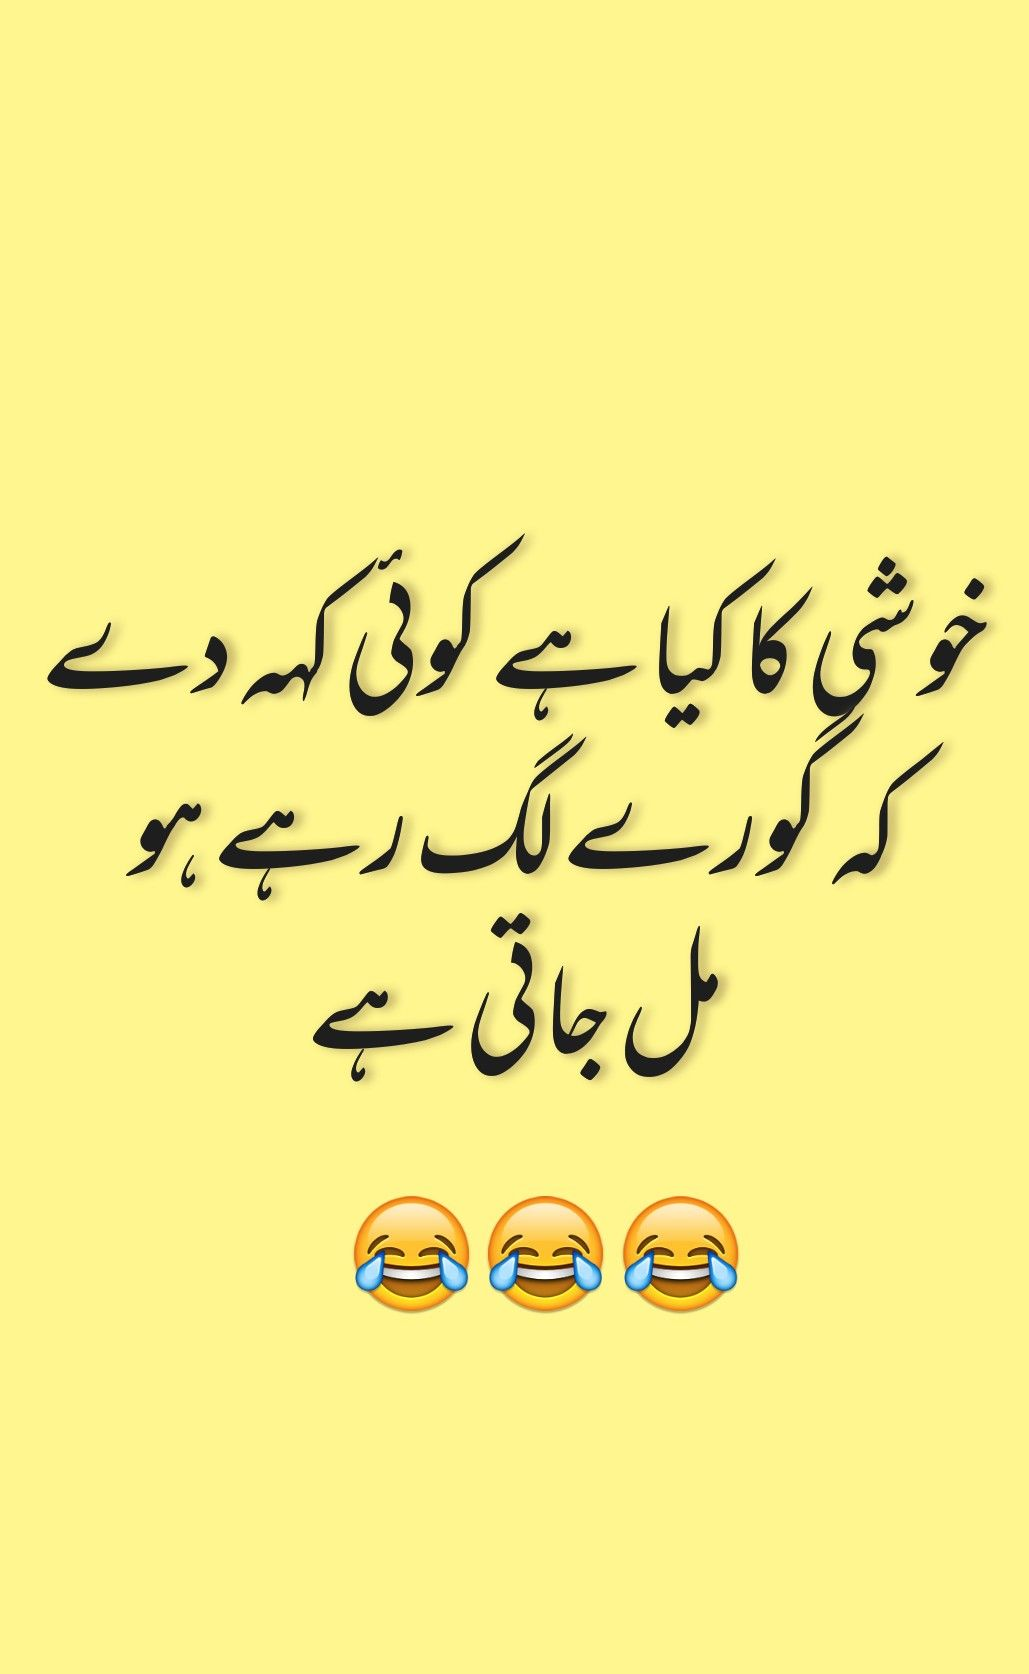 Funny Images With Text In Urdu : funny, images, N༗O༣U༣R⃞O࿆Ž, Funny, Quote, Sarcastic, Quotes, Funny,, Jokes, Quotes,, Super